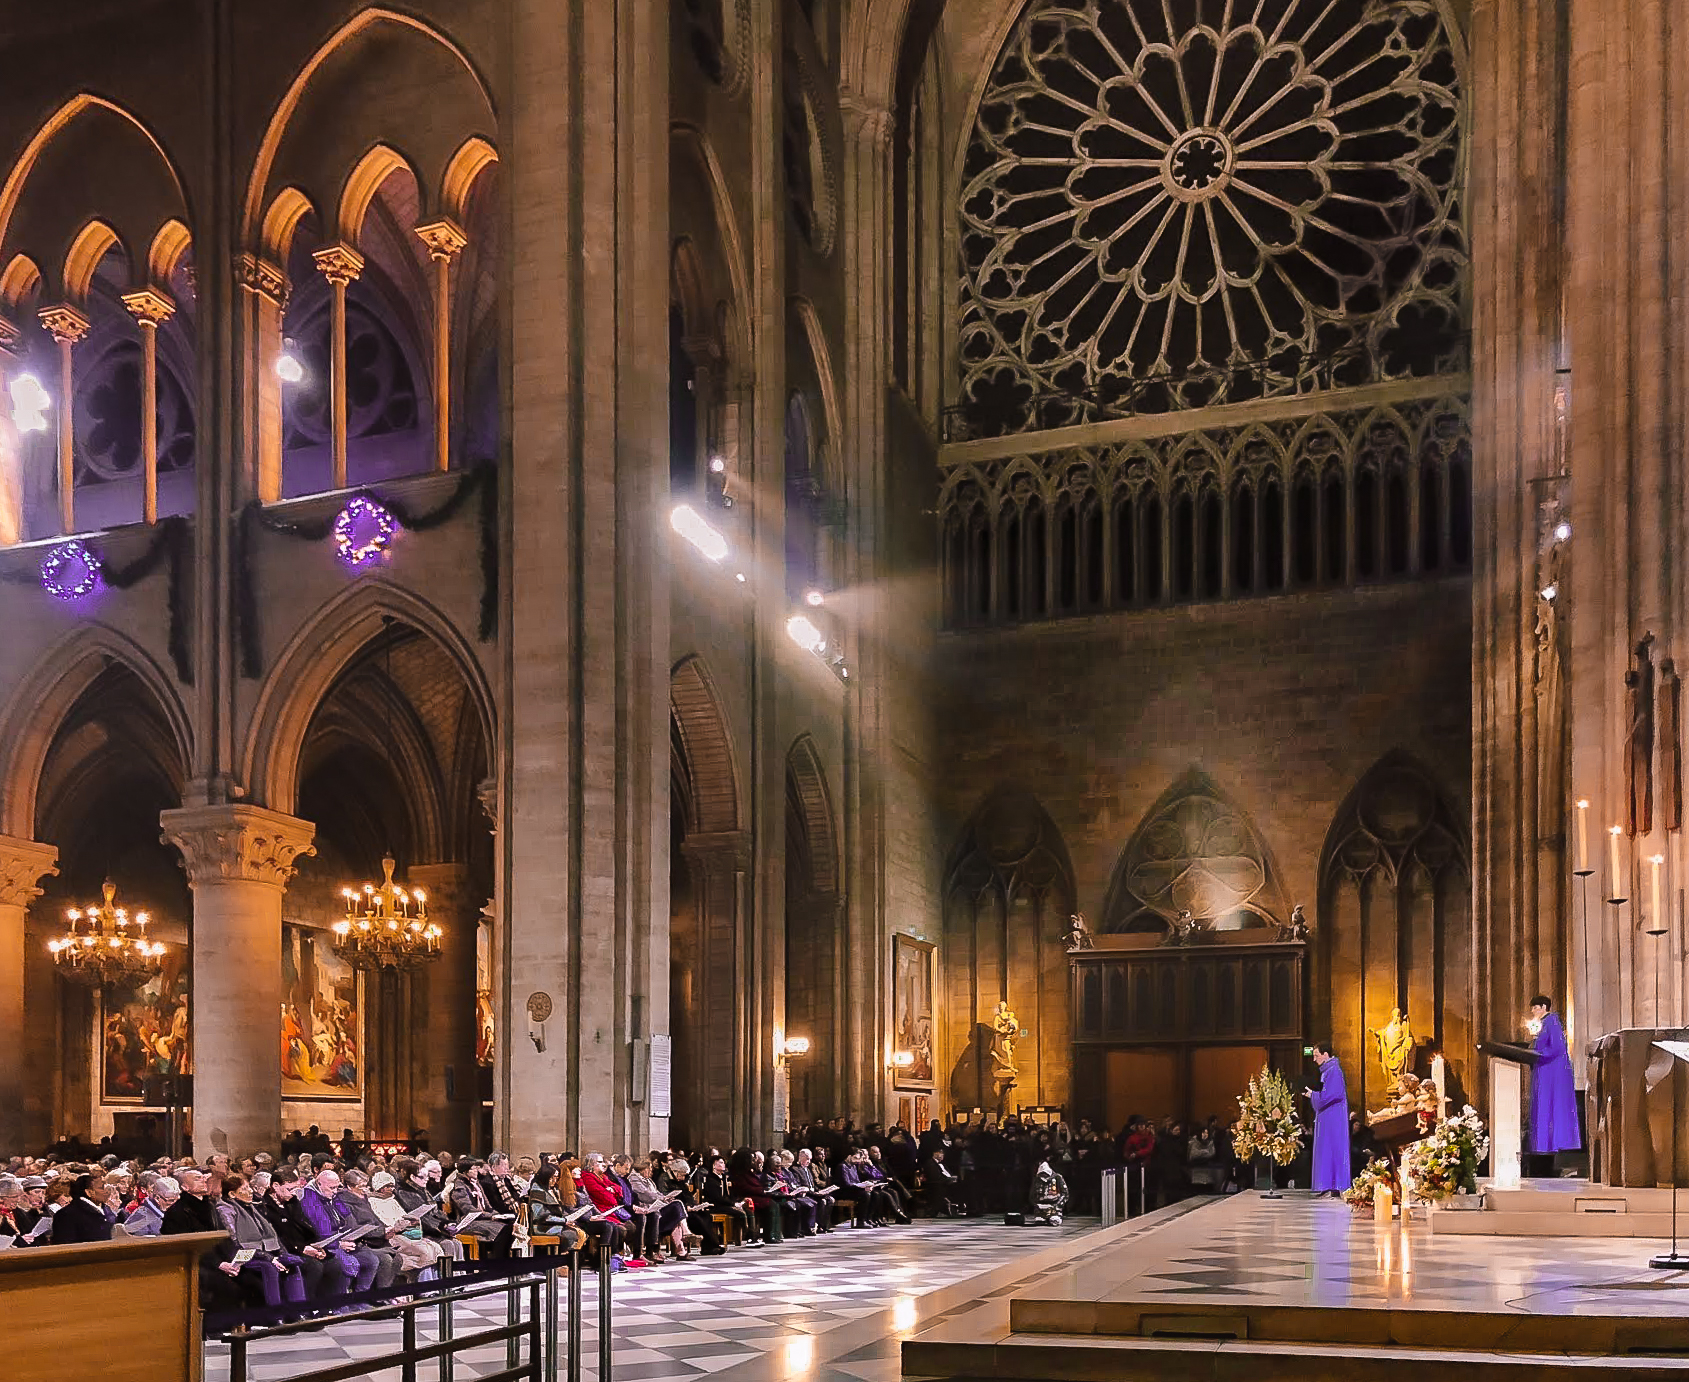 Mass inside Notre-Dame cathedral Paris